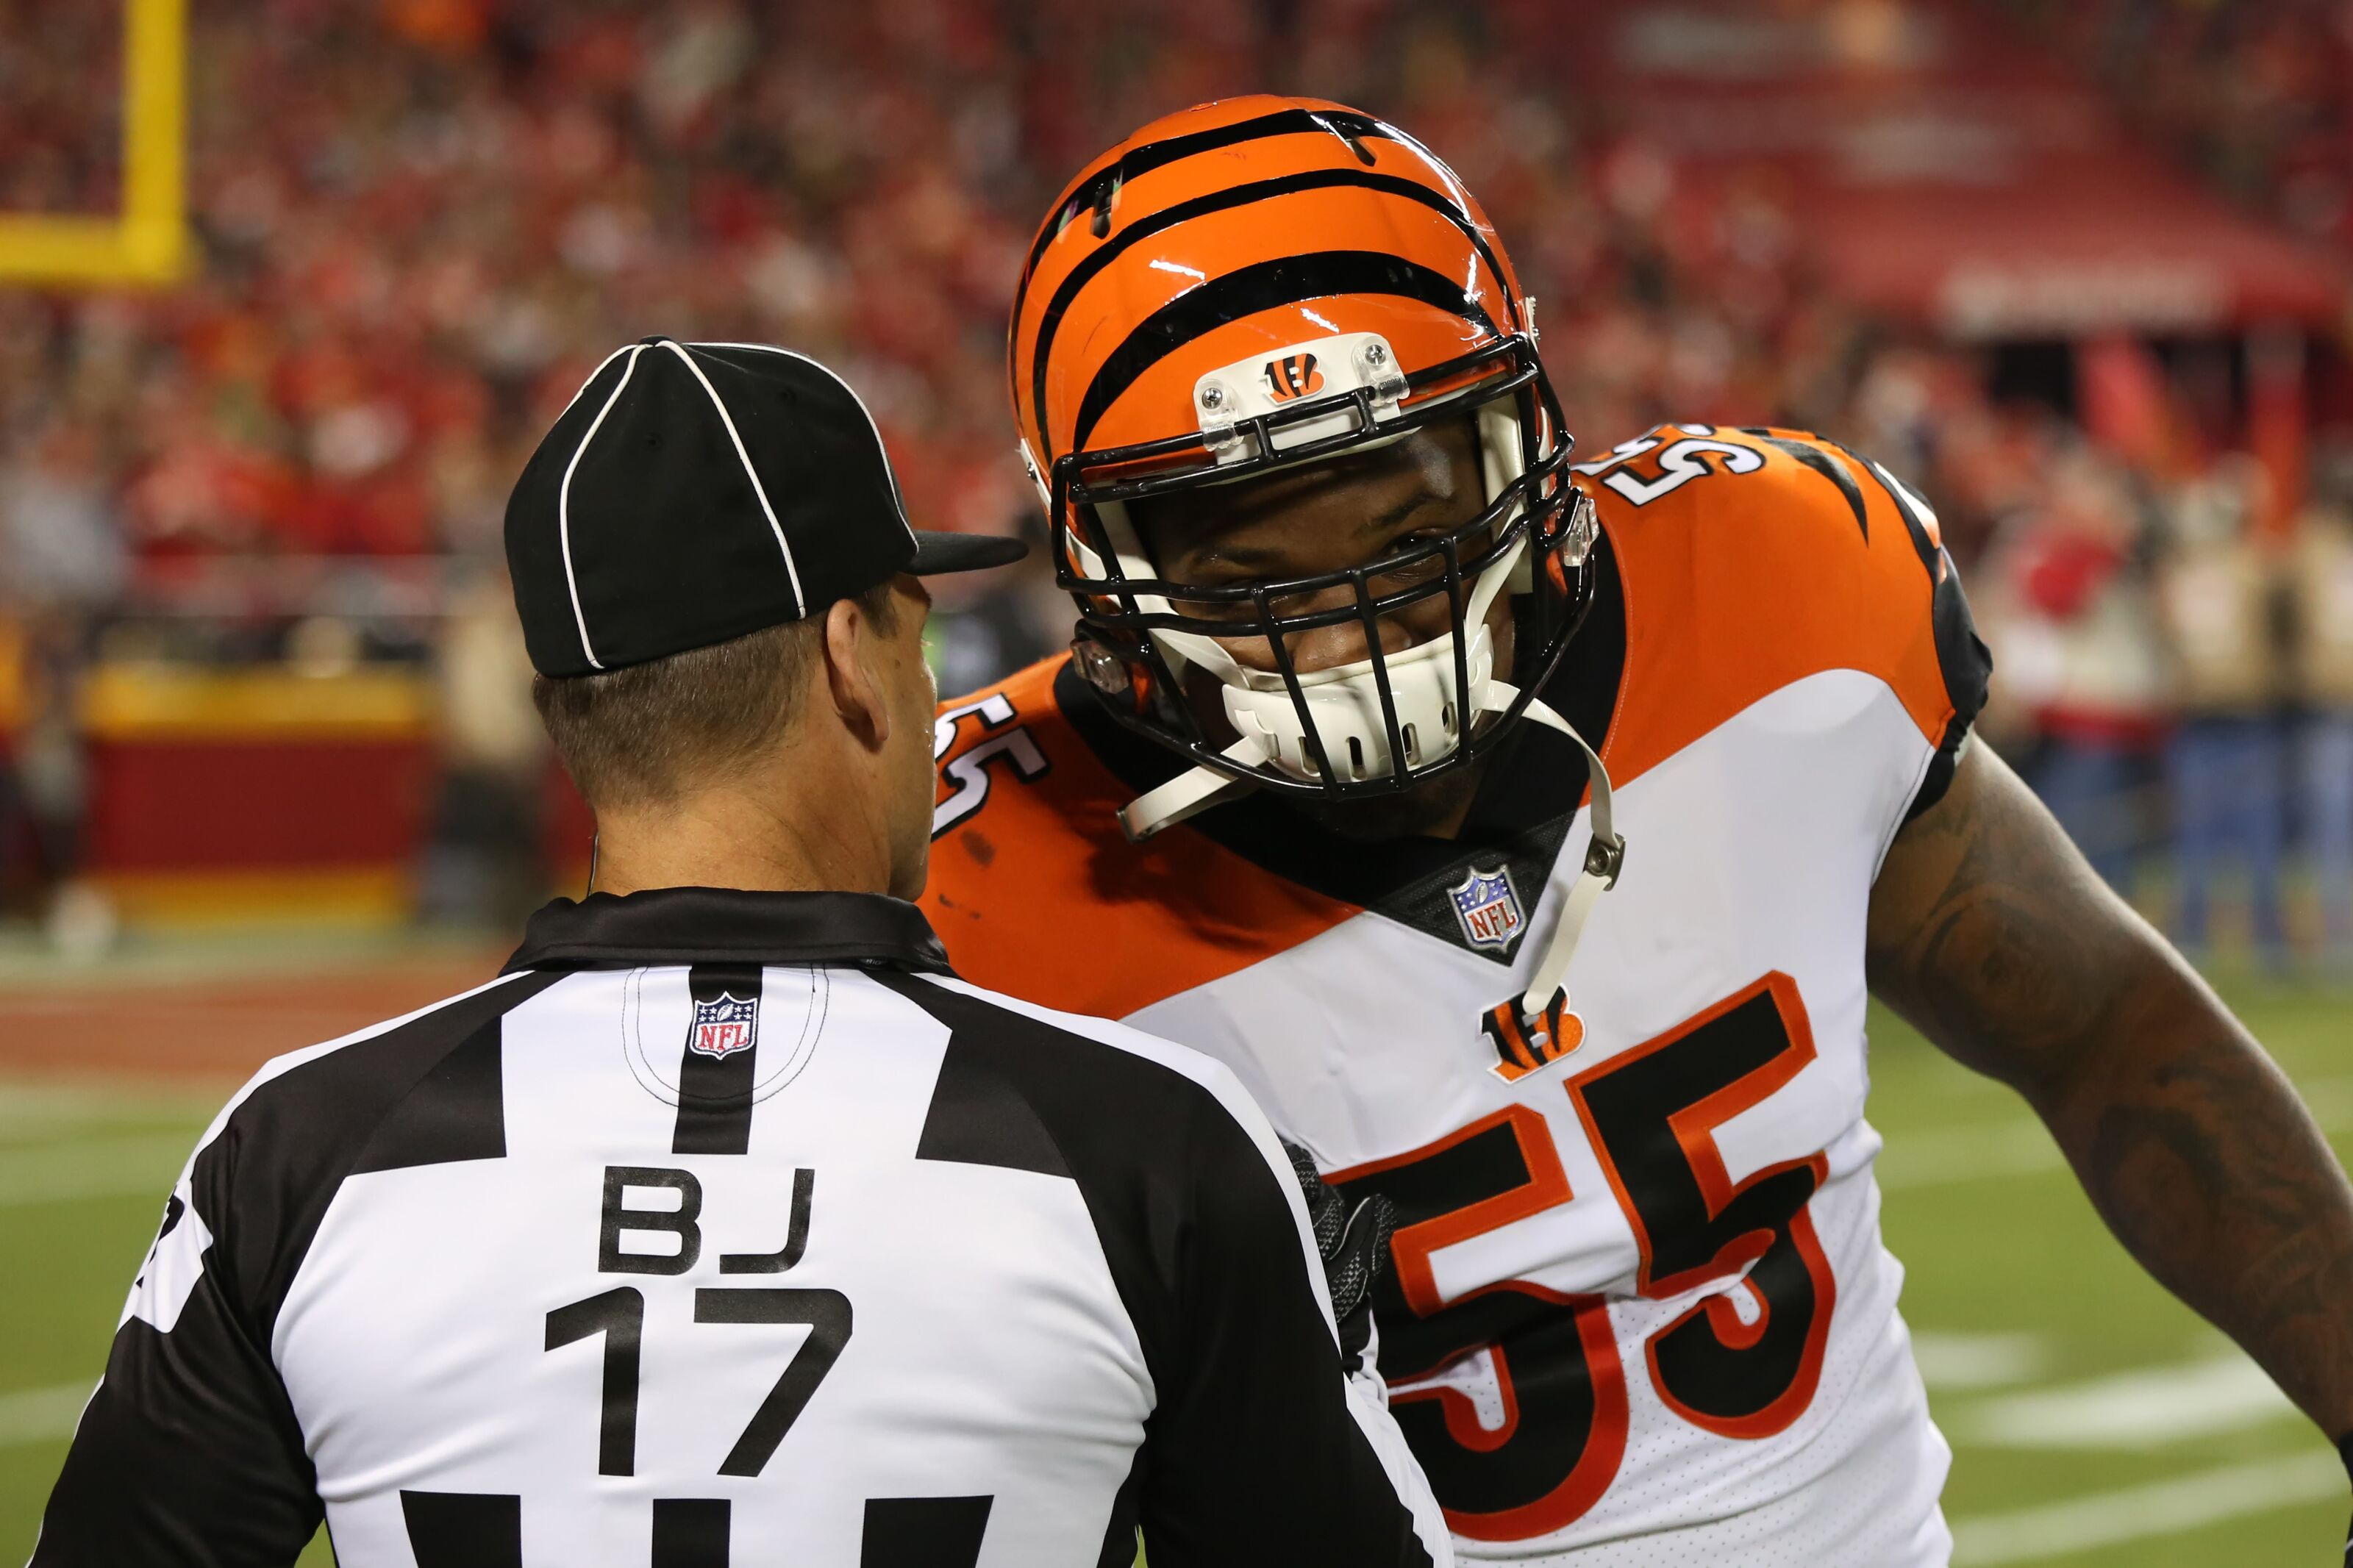 Oakland Raiders sign Vontaze Burfict: Grade, reaction and more